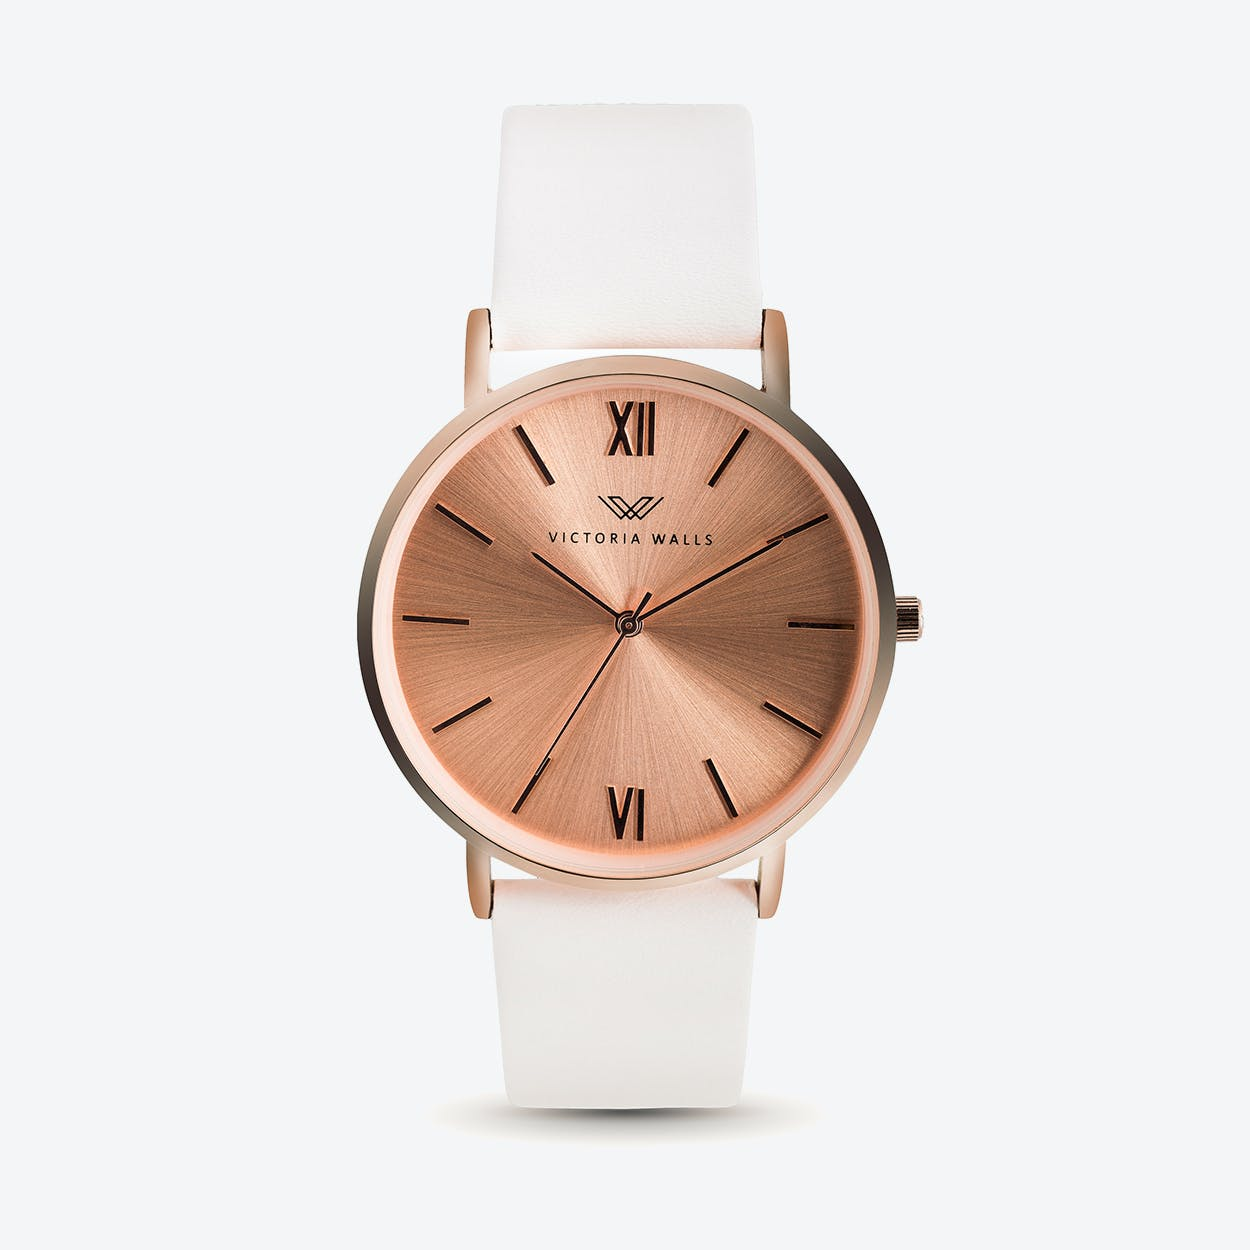 Leather Strap Rose Gold Watch En Rose Gold Watch W Rose Gold Face White Nappa Leather Strap